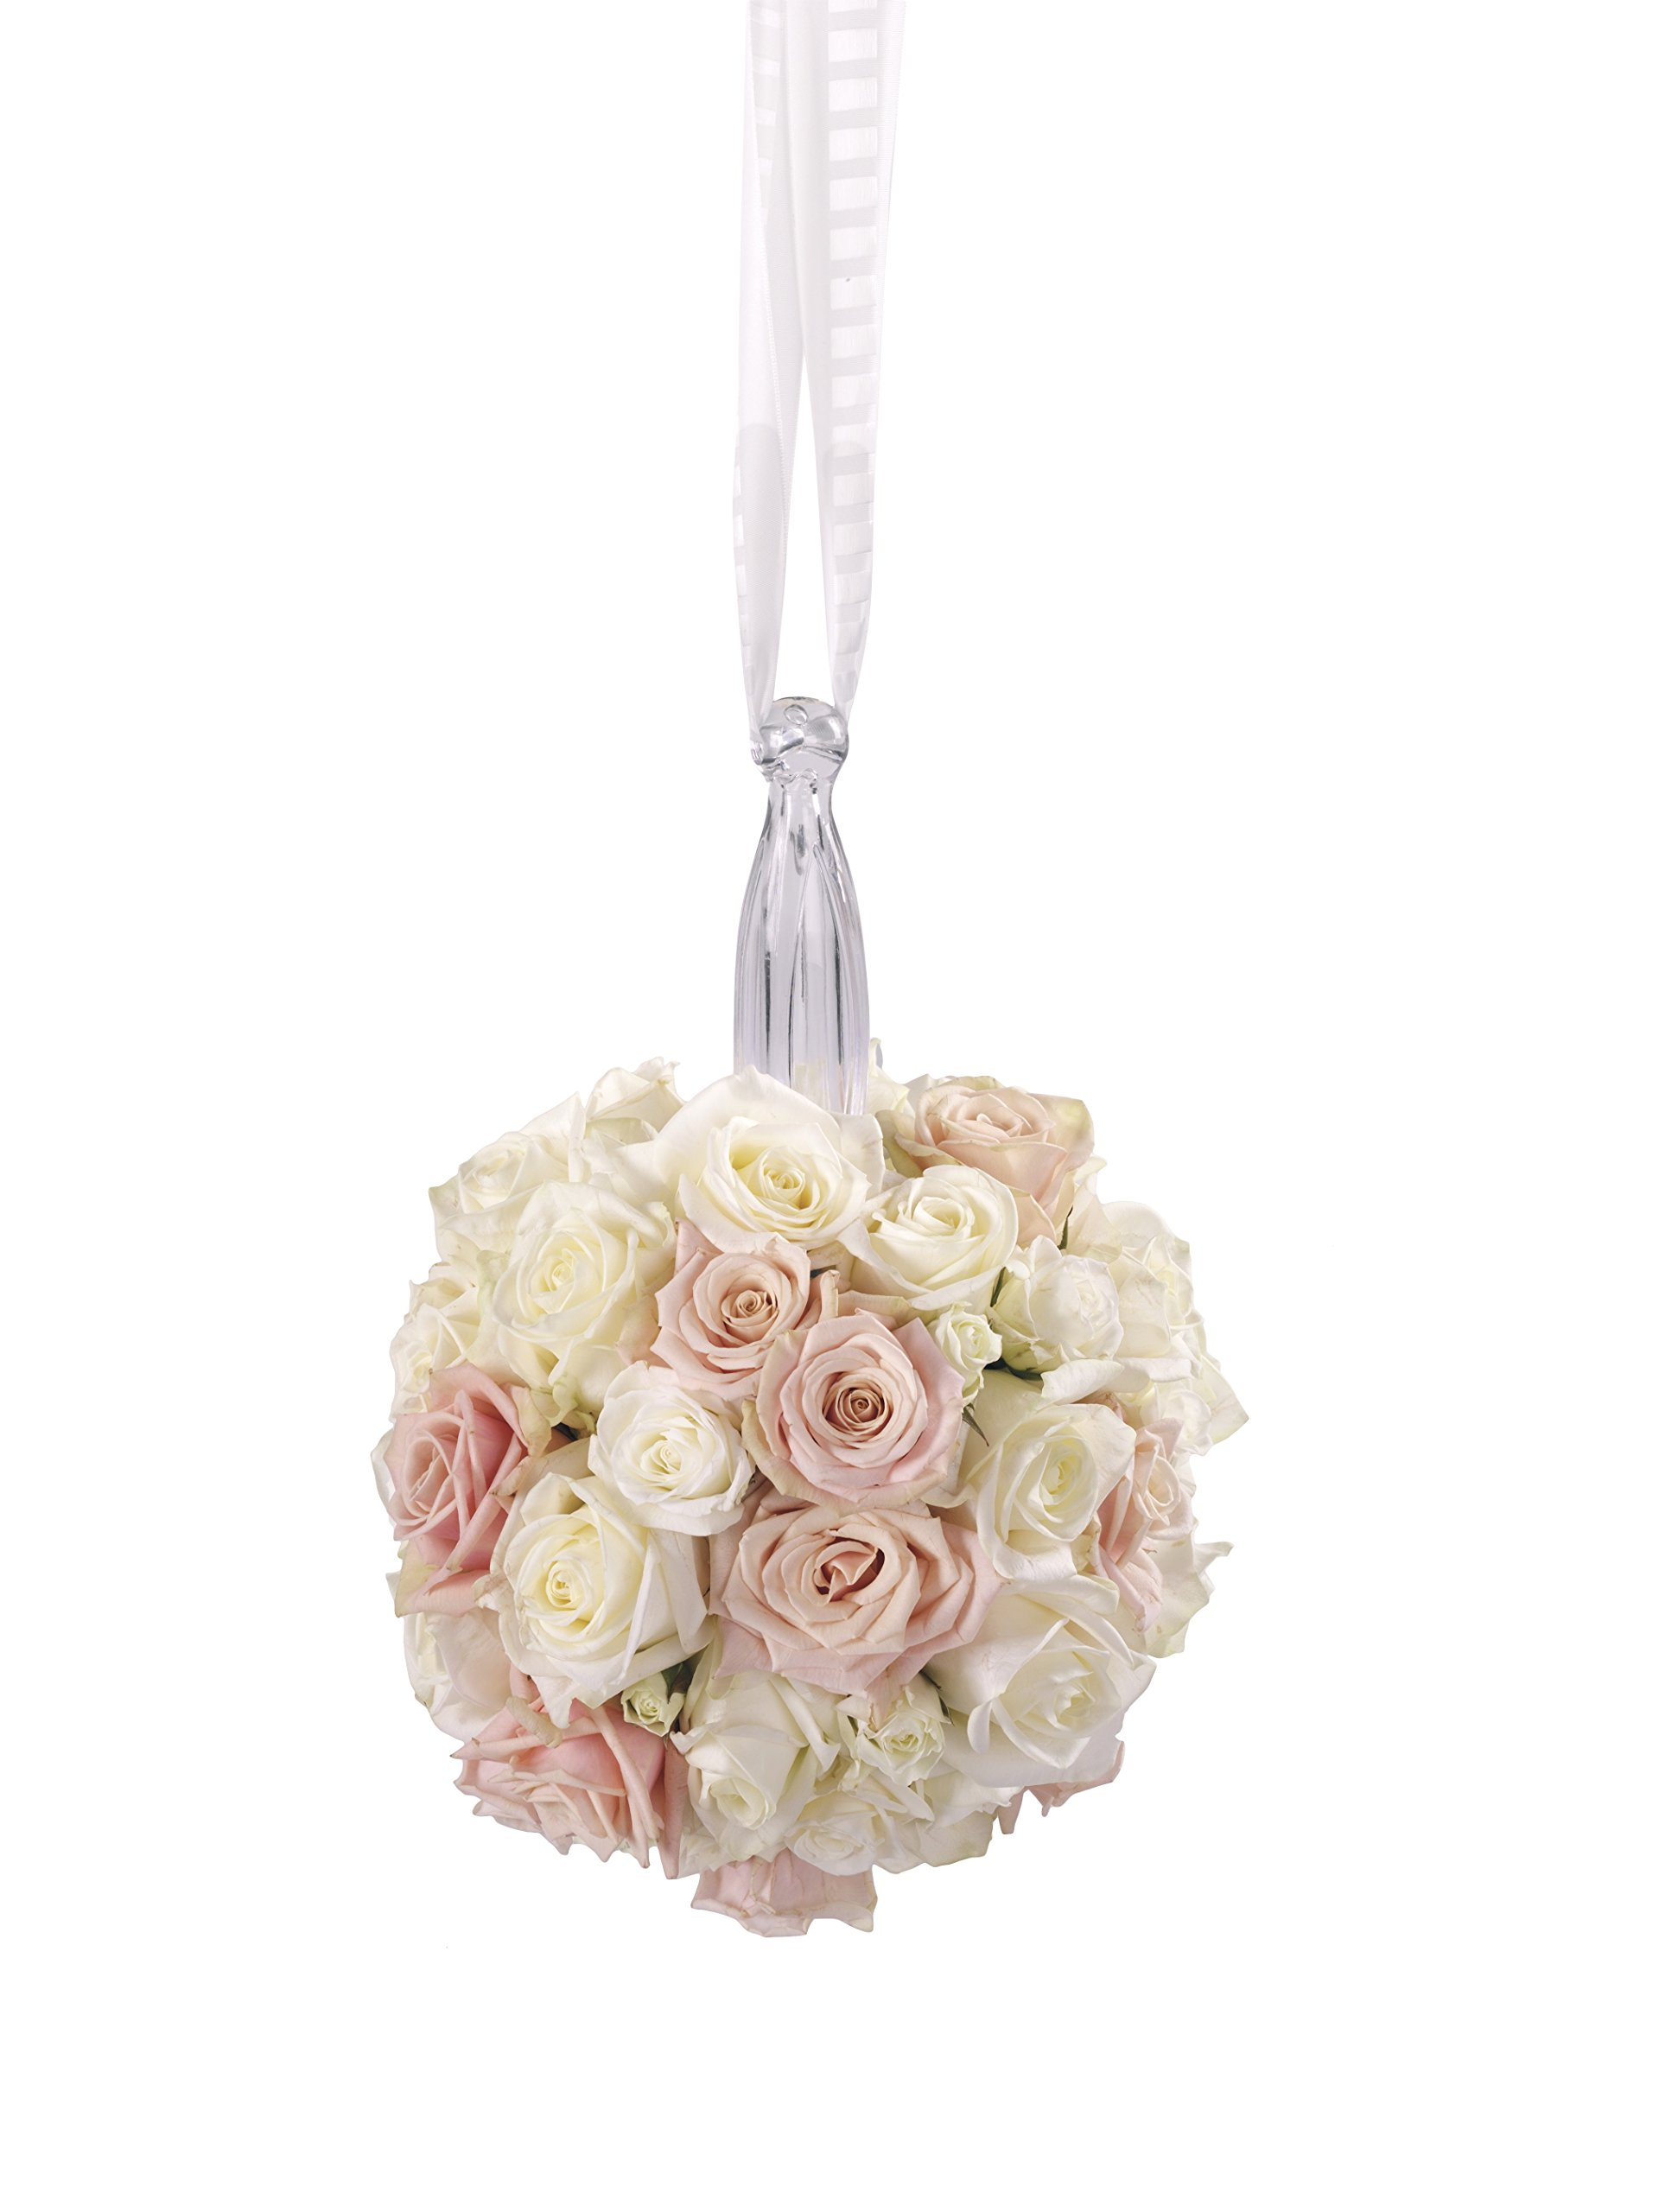 FloraCraft Gala Bouquet Holder with Floral Wet Foam 4.1 Inch x 9.75 Inch Clear Handle